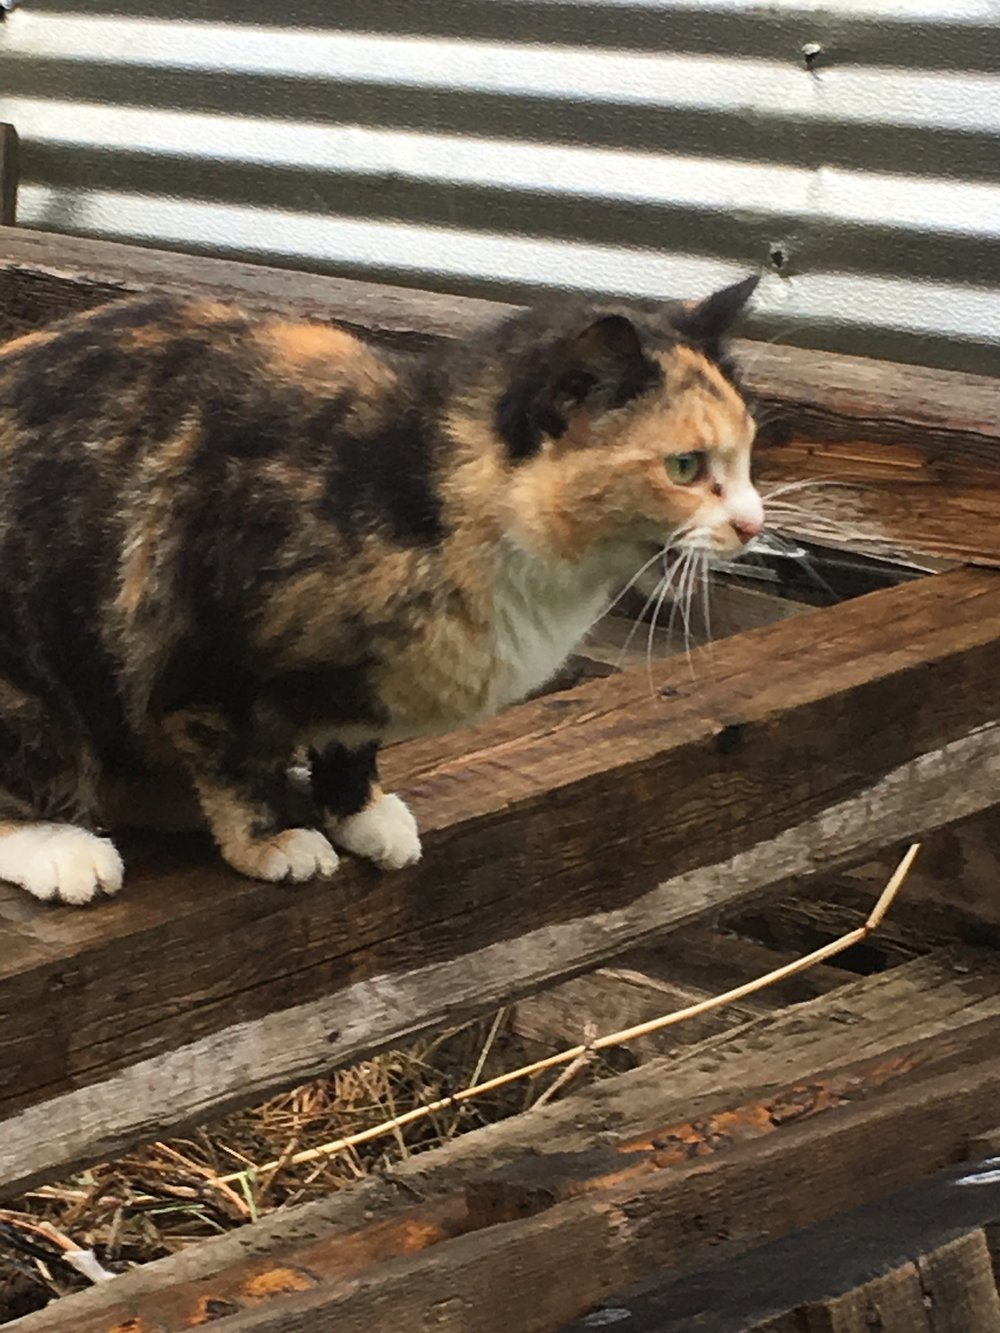 Our resident mouser, Patches, on her rounds near the barn.